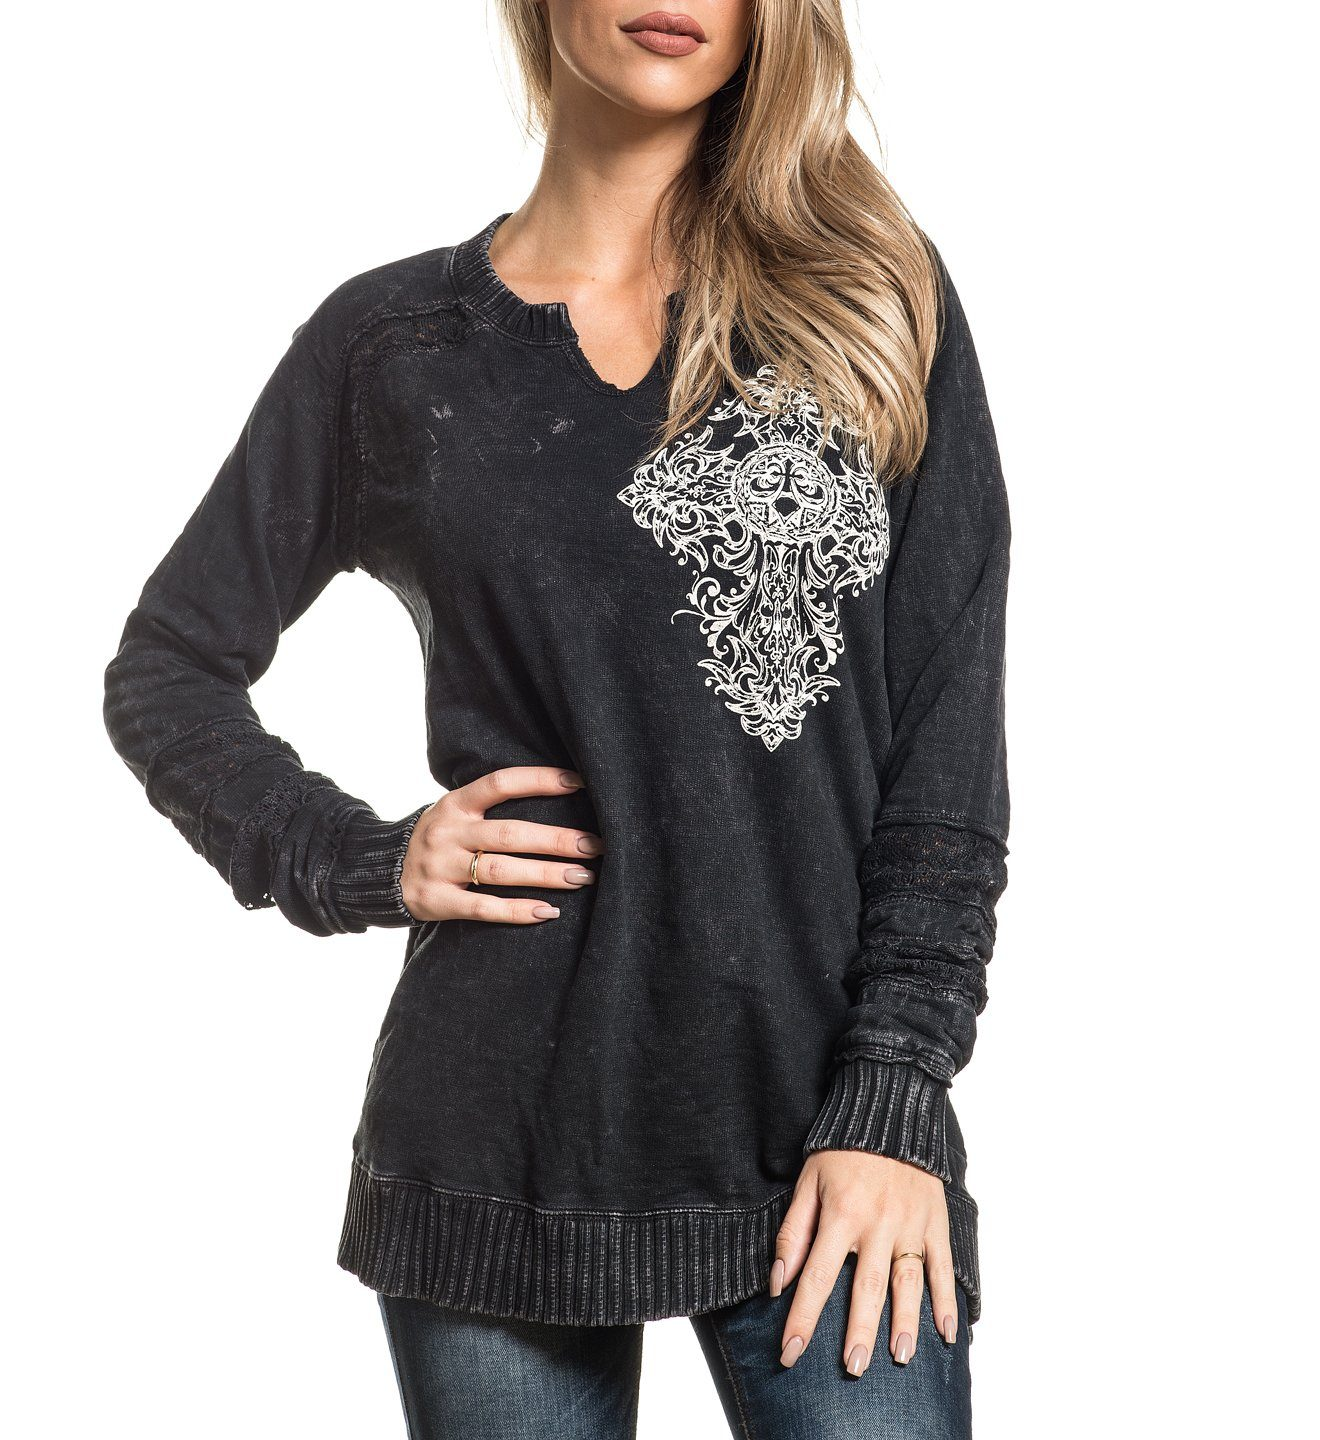 Womens Sweaters And Sweatshirts - Precious Metal